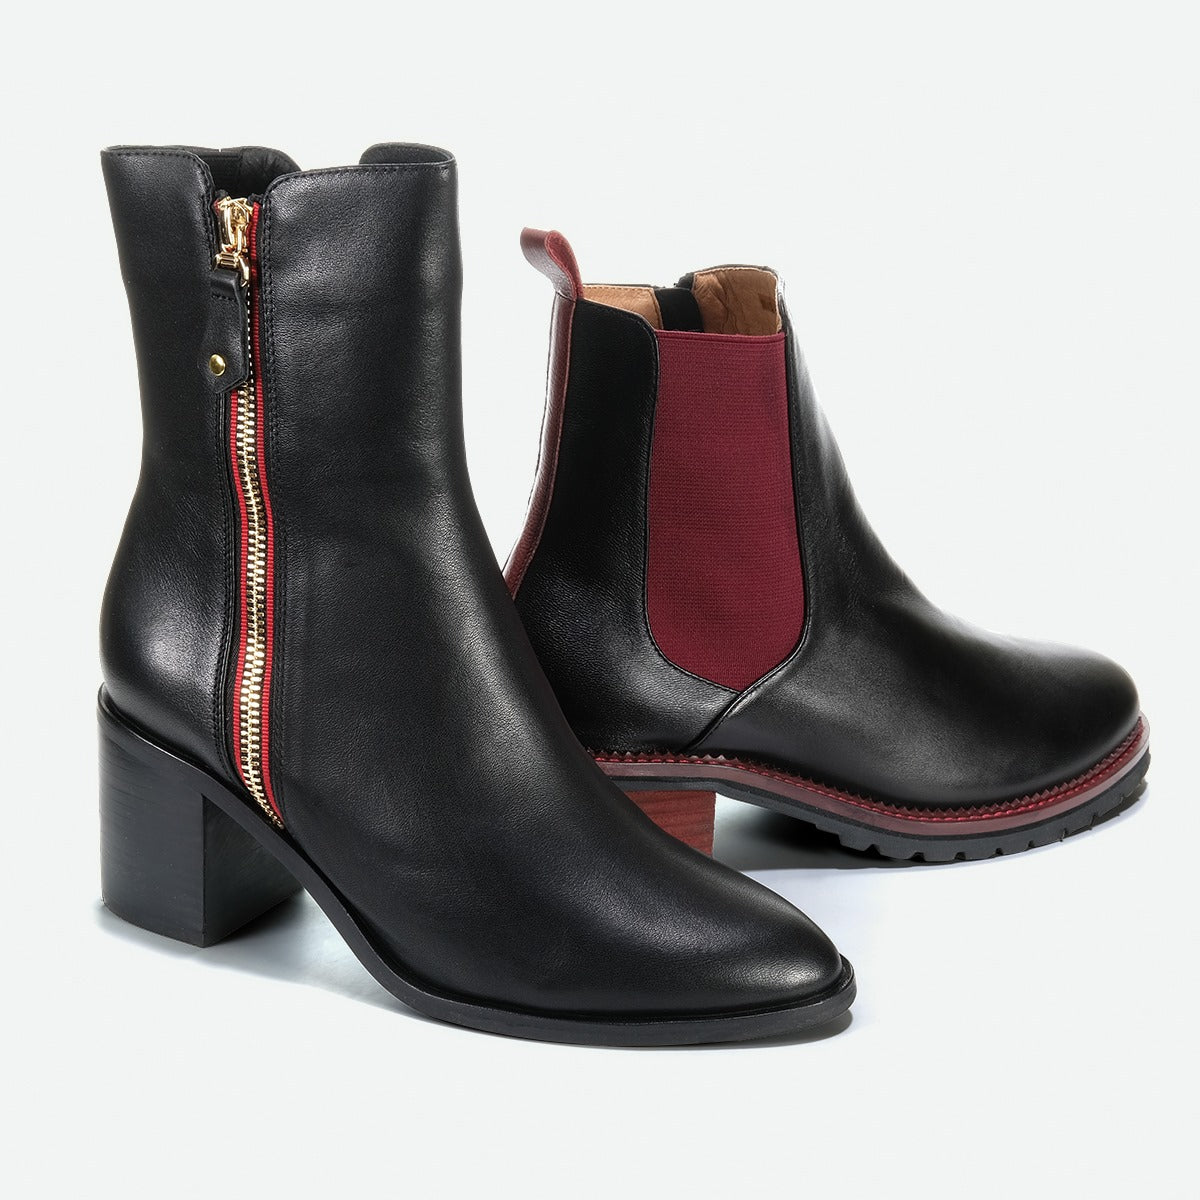 Bresley boots